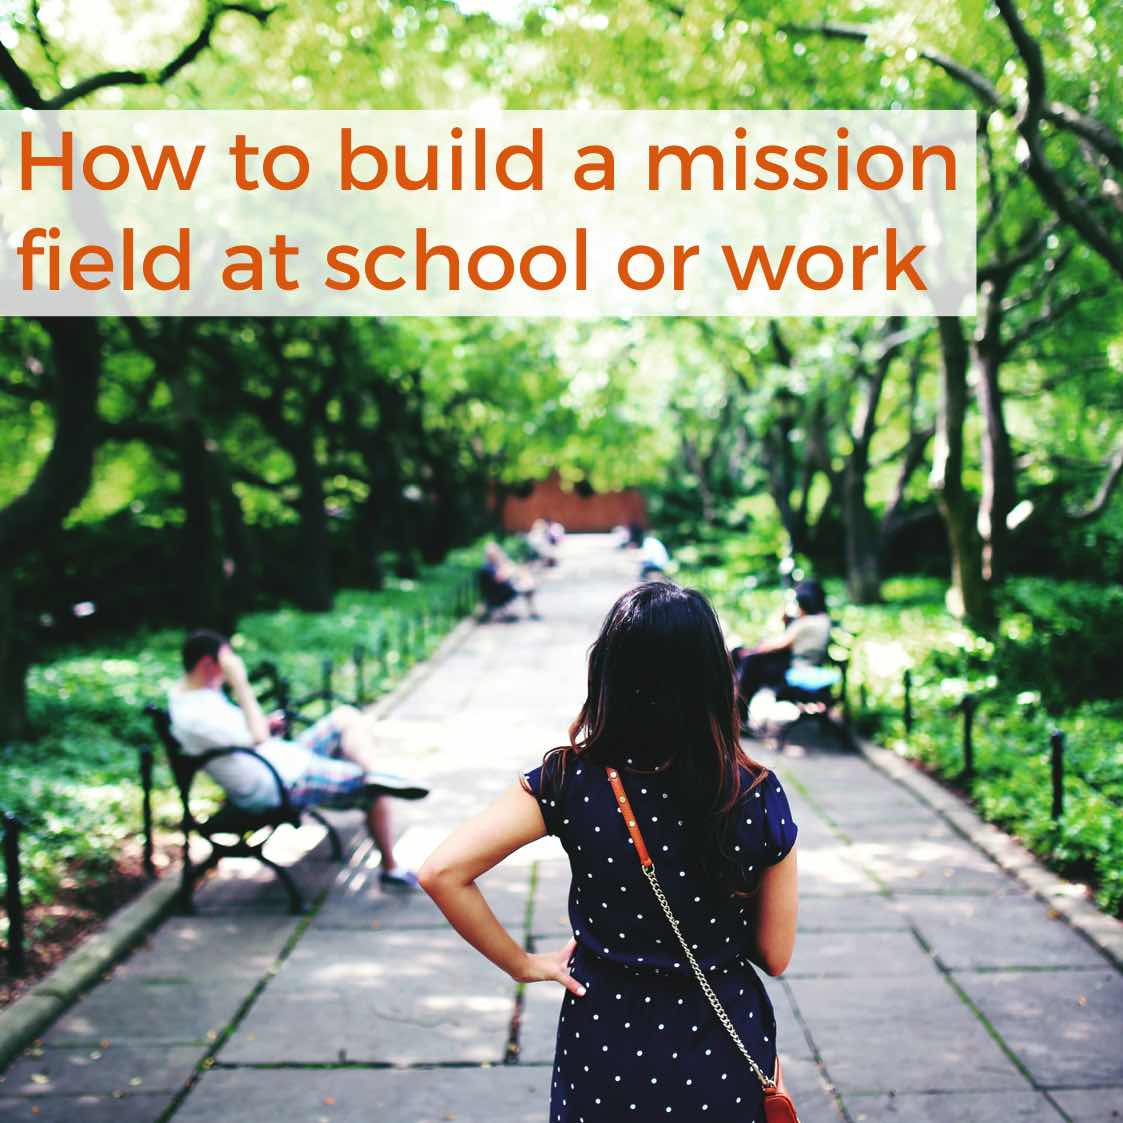 Episode 28: How to build a mission field at school or work